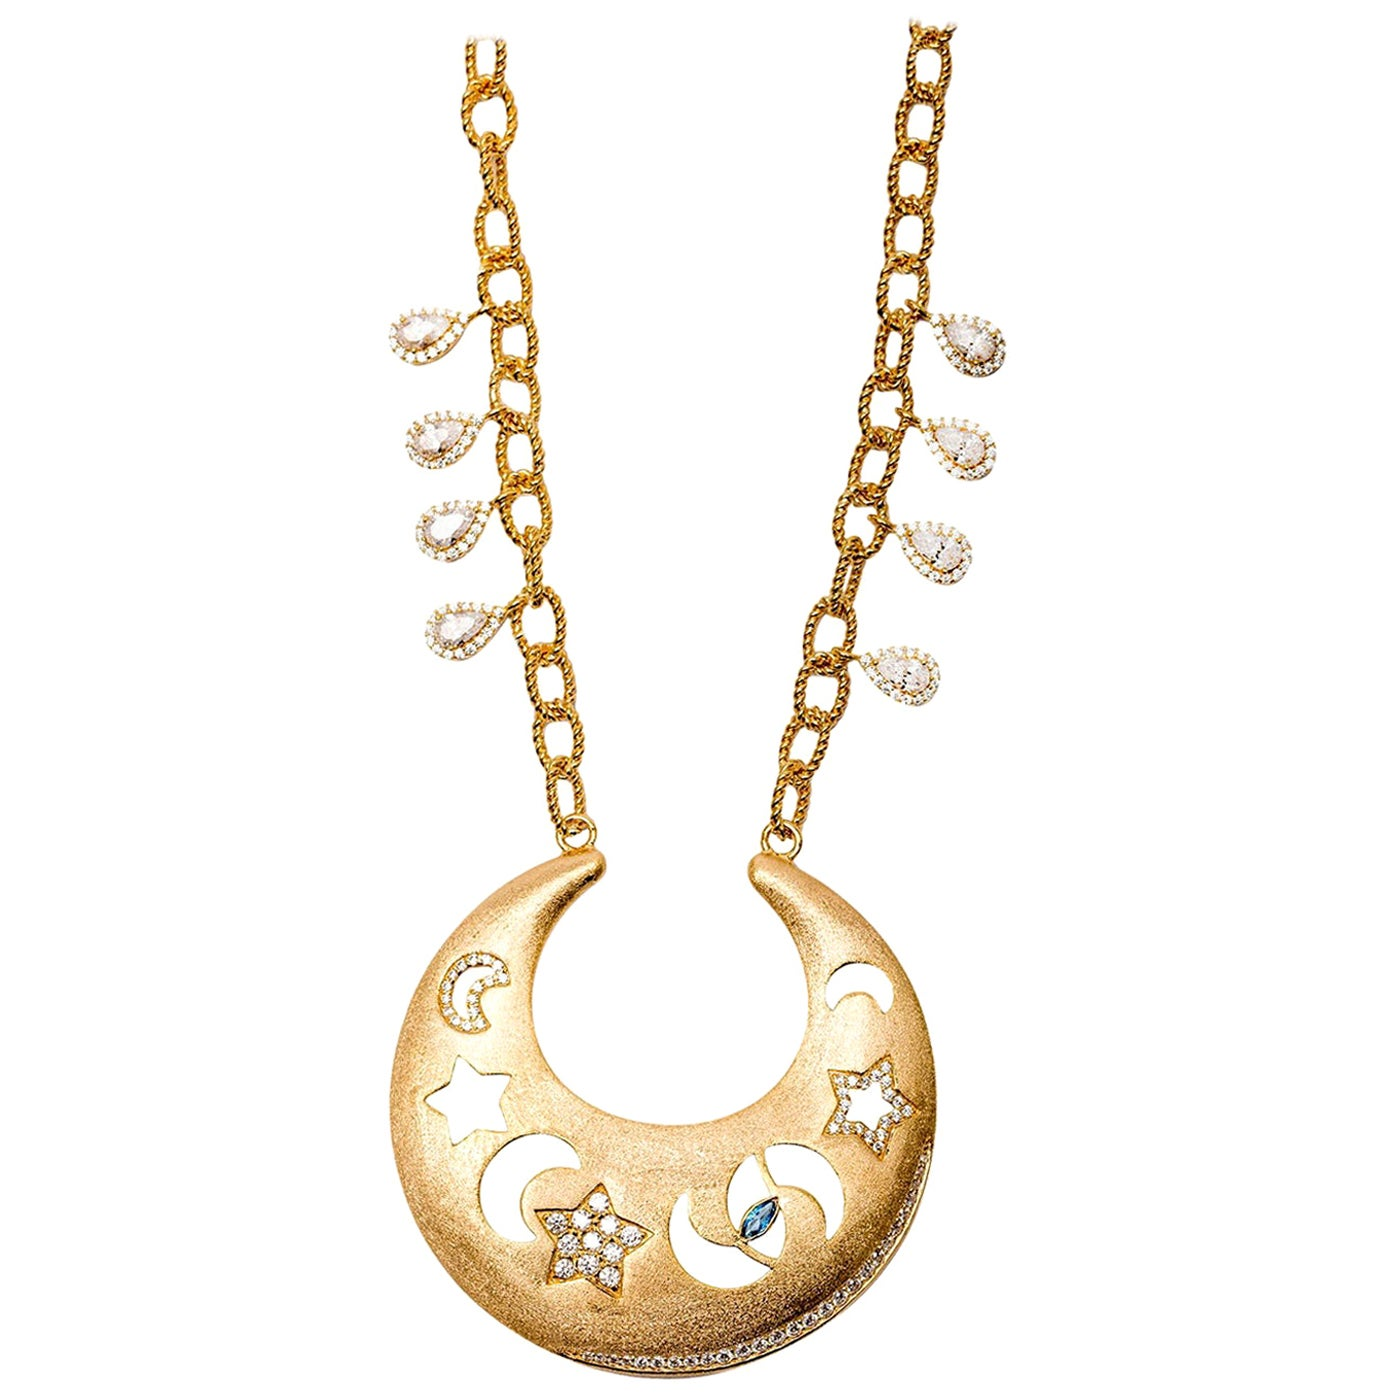 Ammanii Celestial Necklace with Moon, Stars and Protective Eye in Vermeil Gold